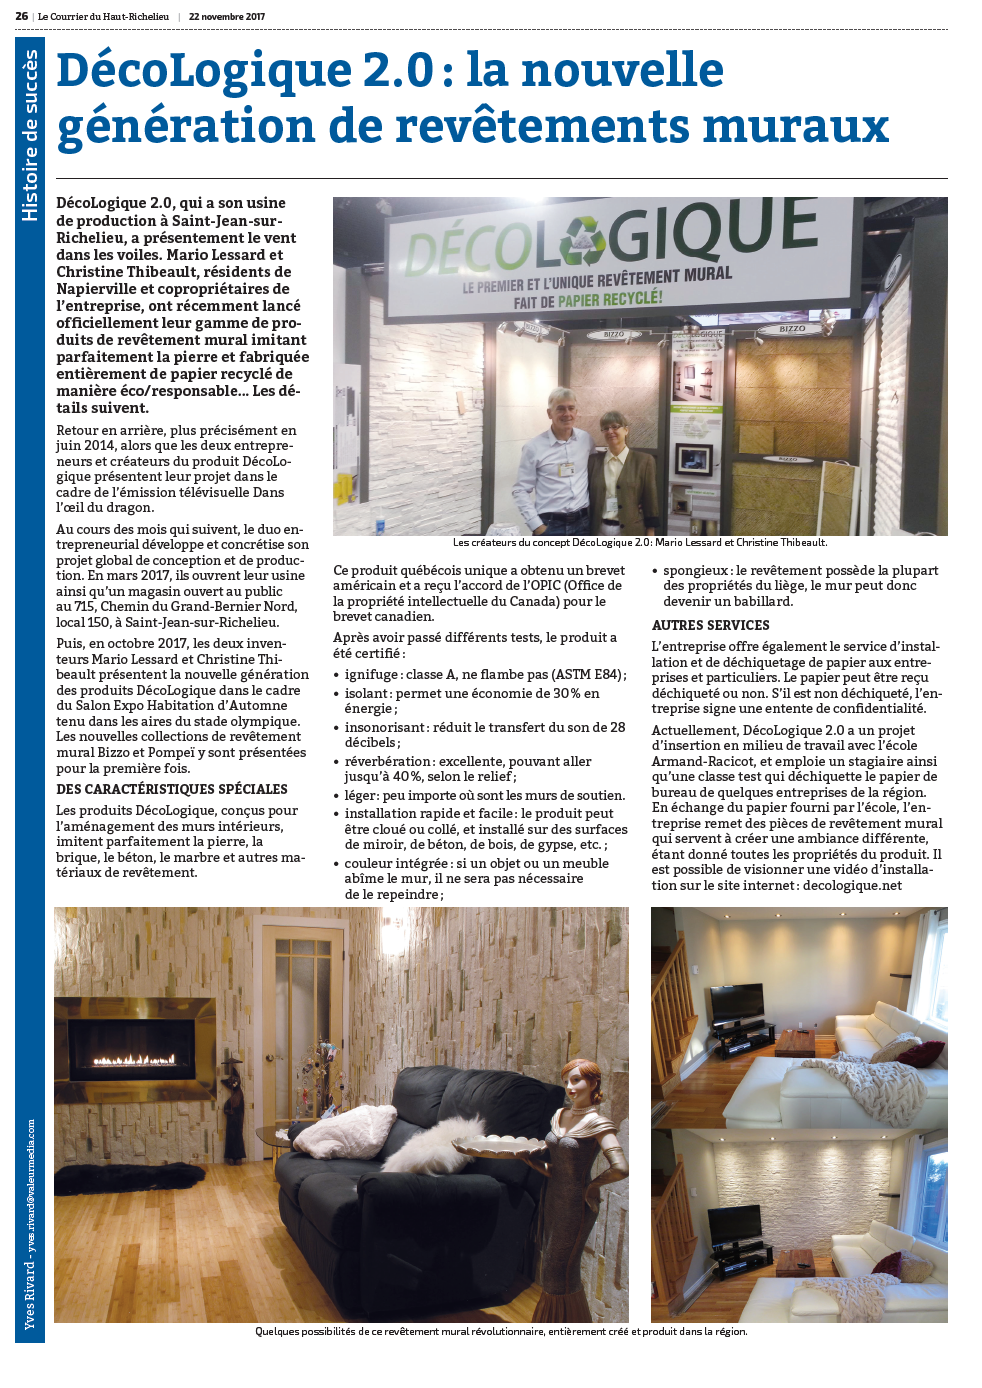 Journal LE COURRIER page 26 DECOLOGIQUE 2.0 Inc..png